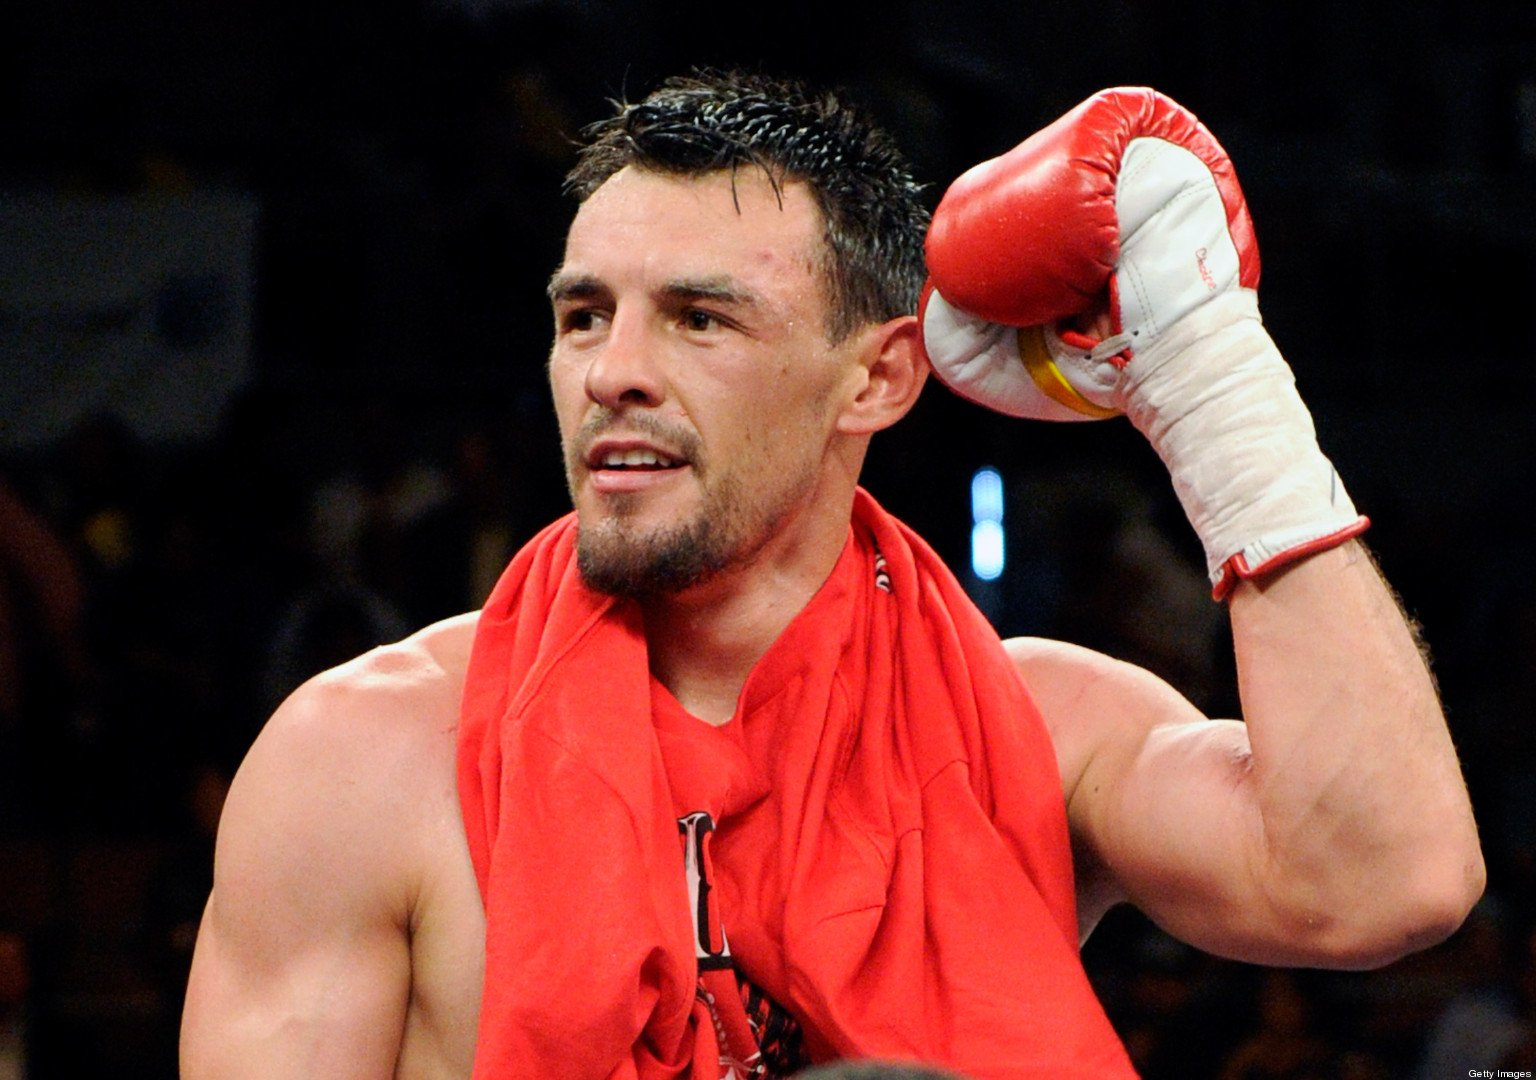 Robert Guerrero celebrates his unanimous-decision victory over Joel Casamayor in their junior welterweight fight at the Mandalay Bay Events Center July 31, 2010 in Las Vegas, Nevada. (Photo by Ethan Miller/Getty Images)